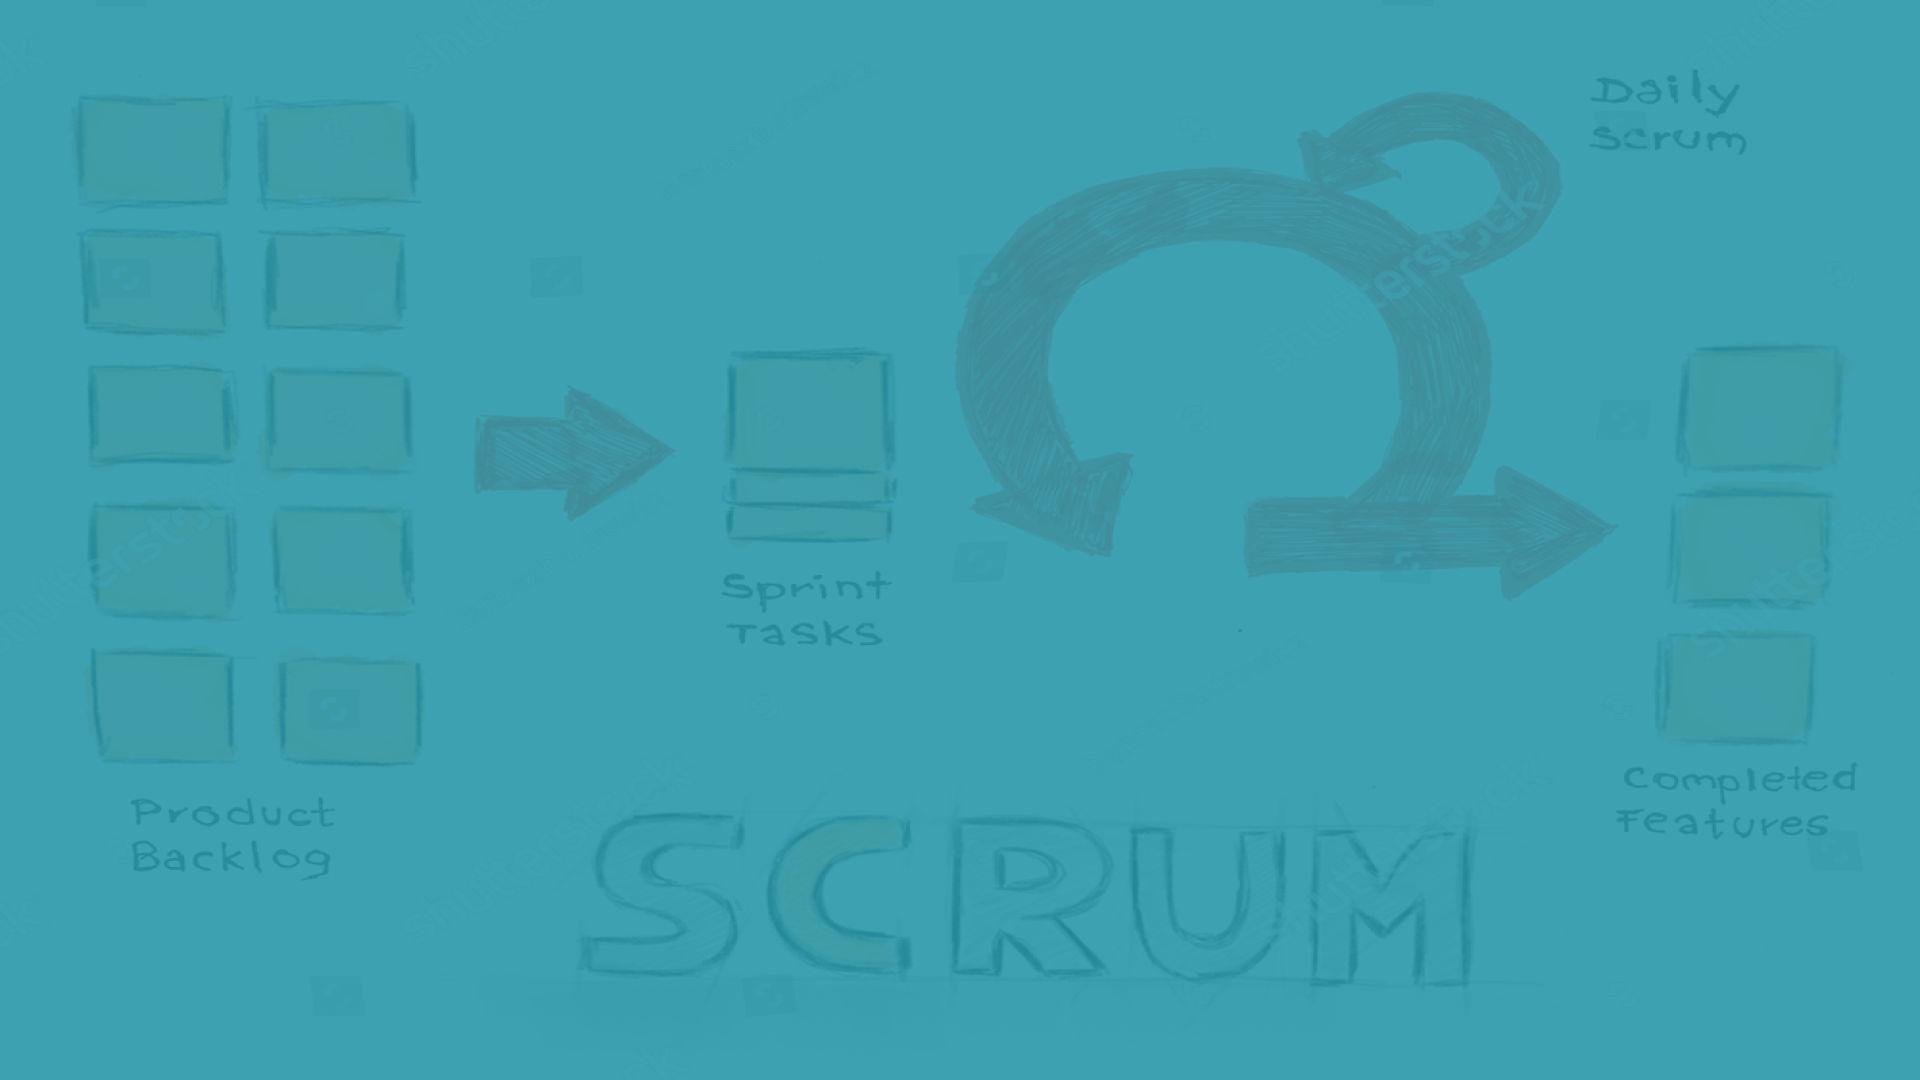 software engineering agile scrum projects